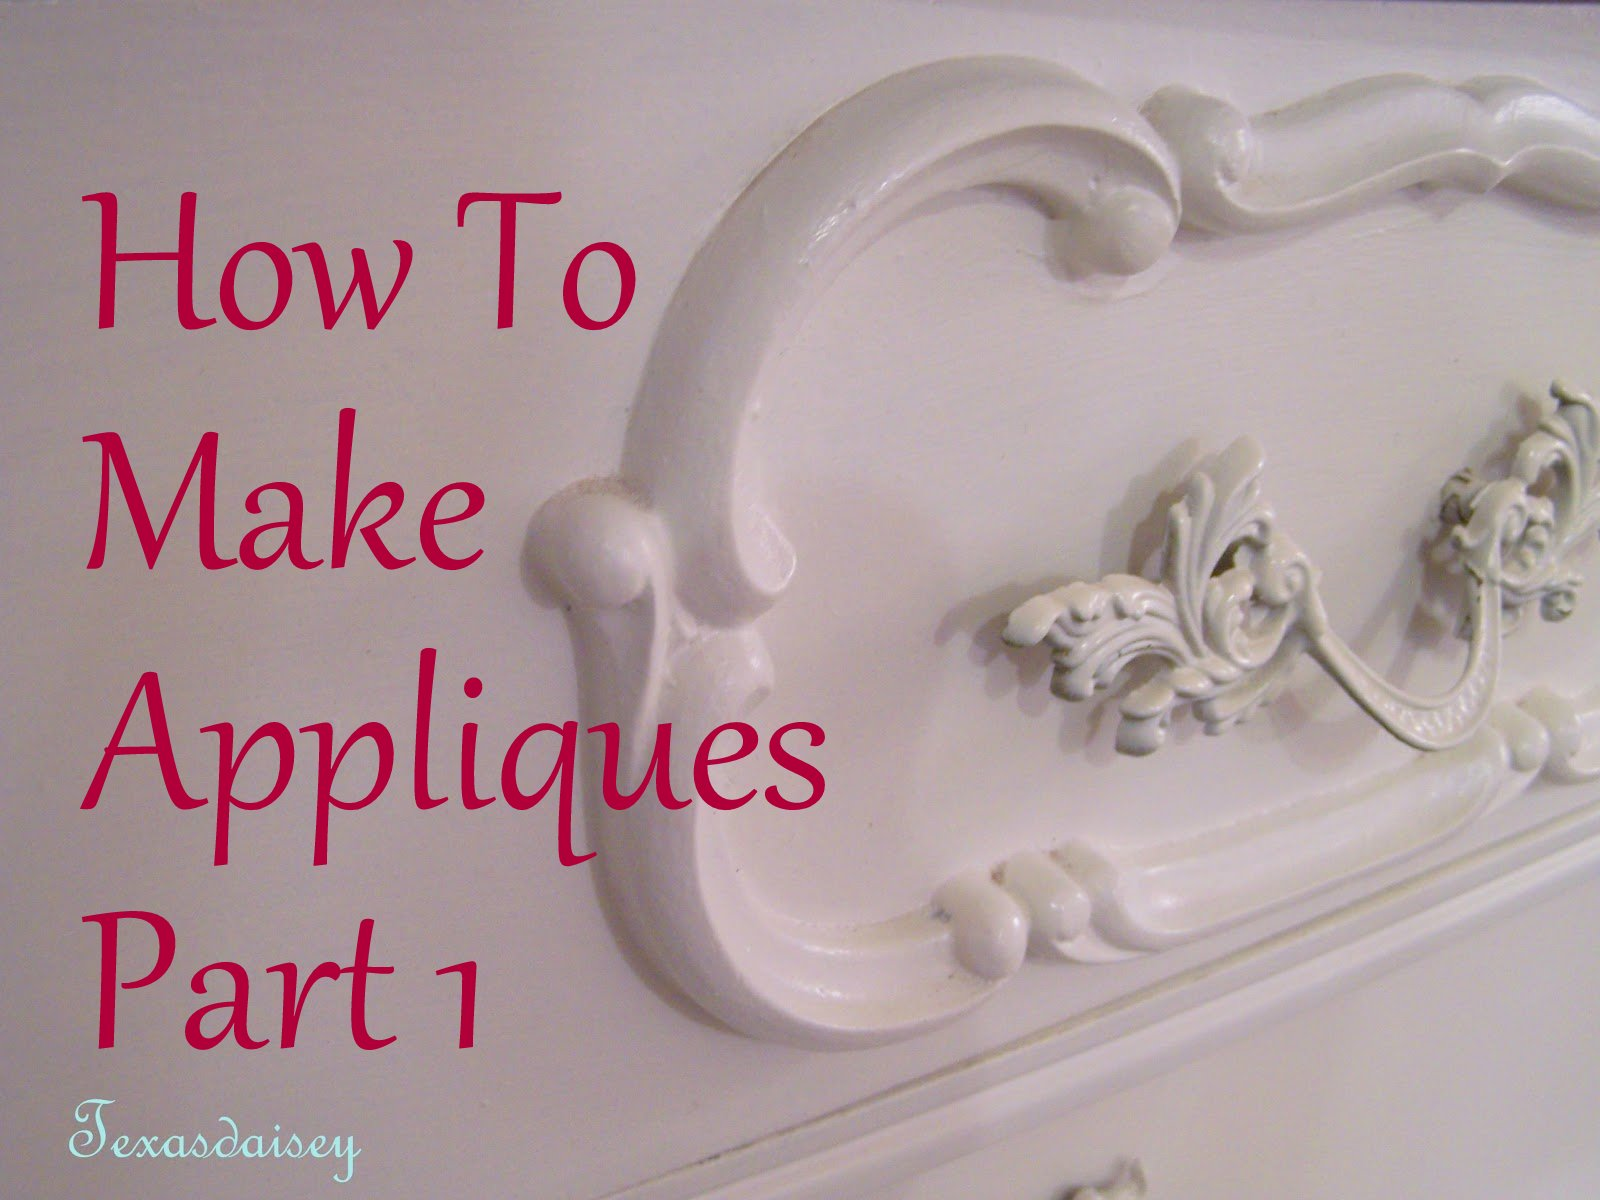 wooden appliques for furniture. How To Make Appliques For Furniture Wooden N